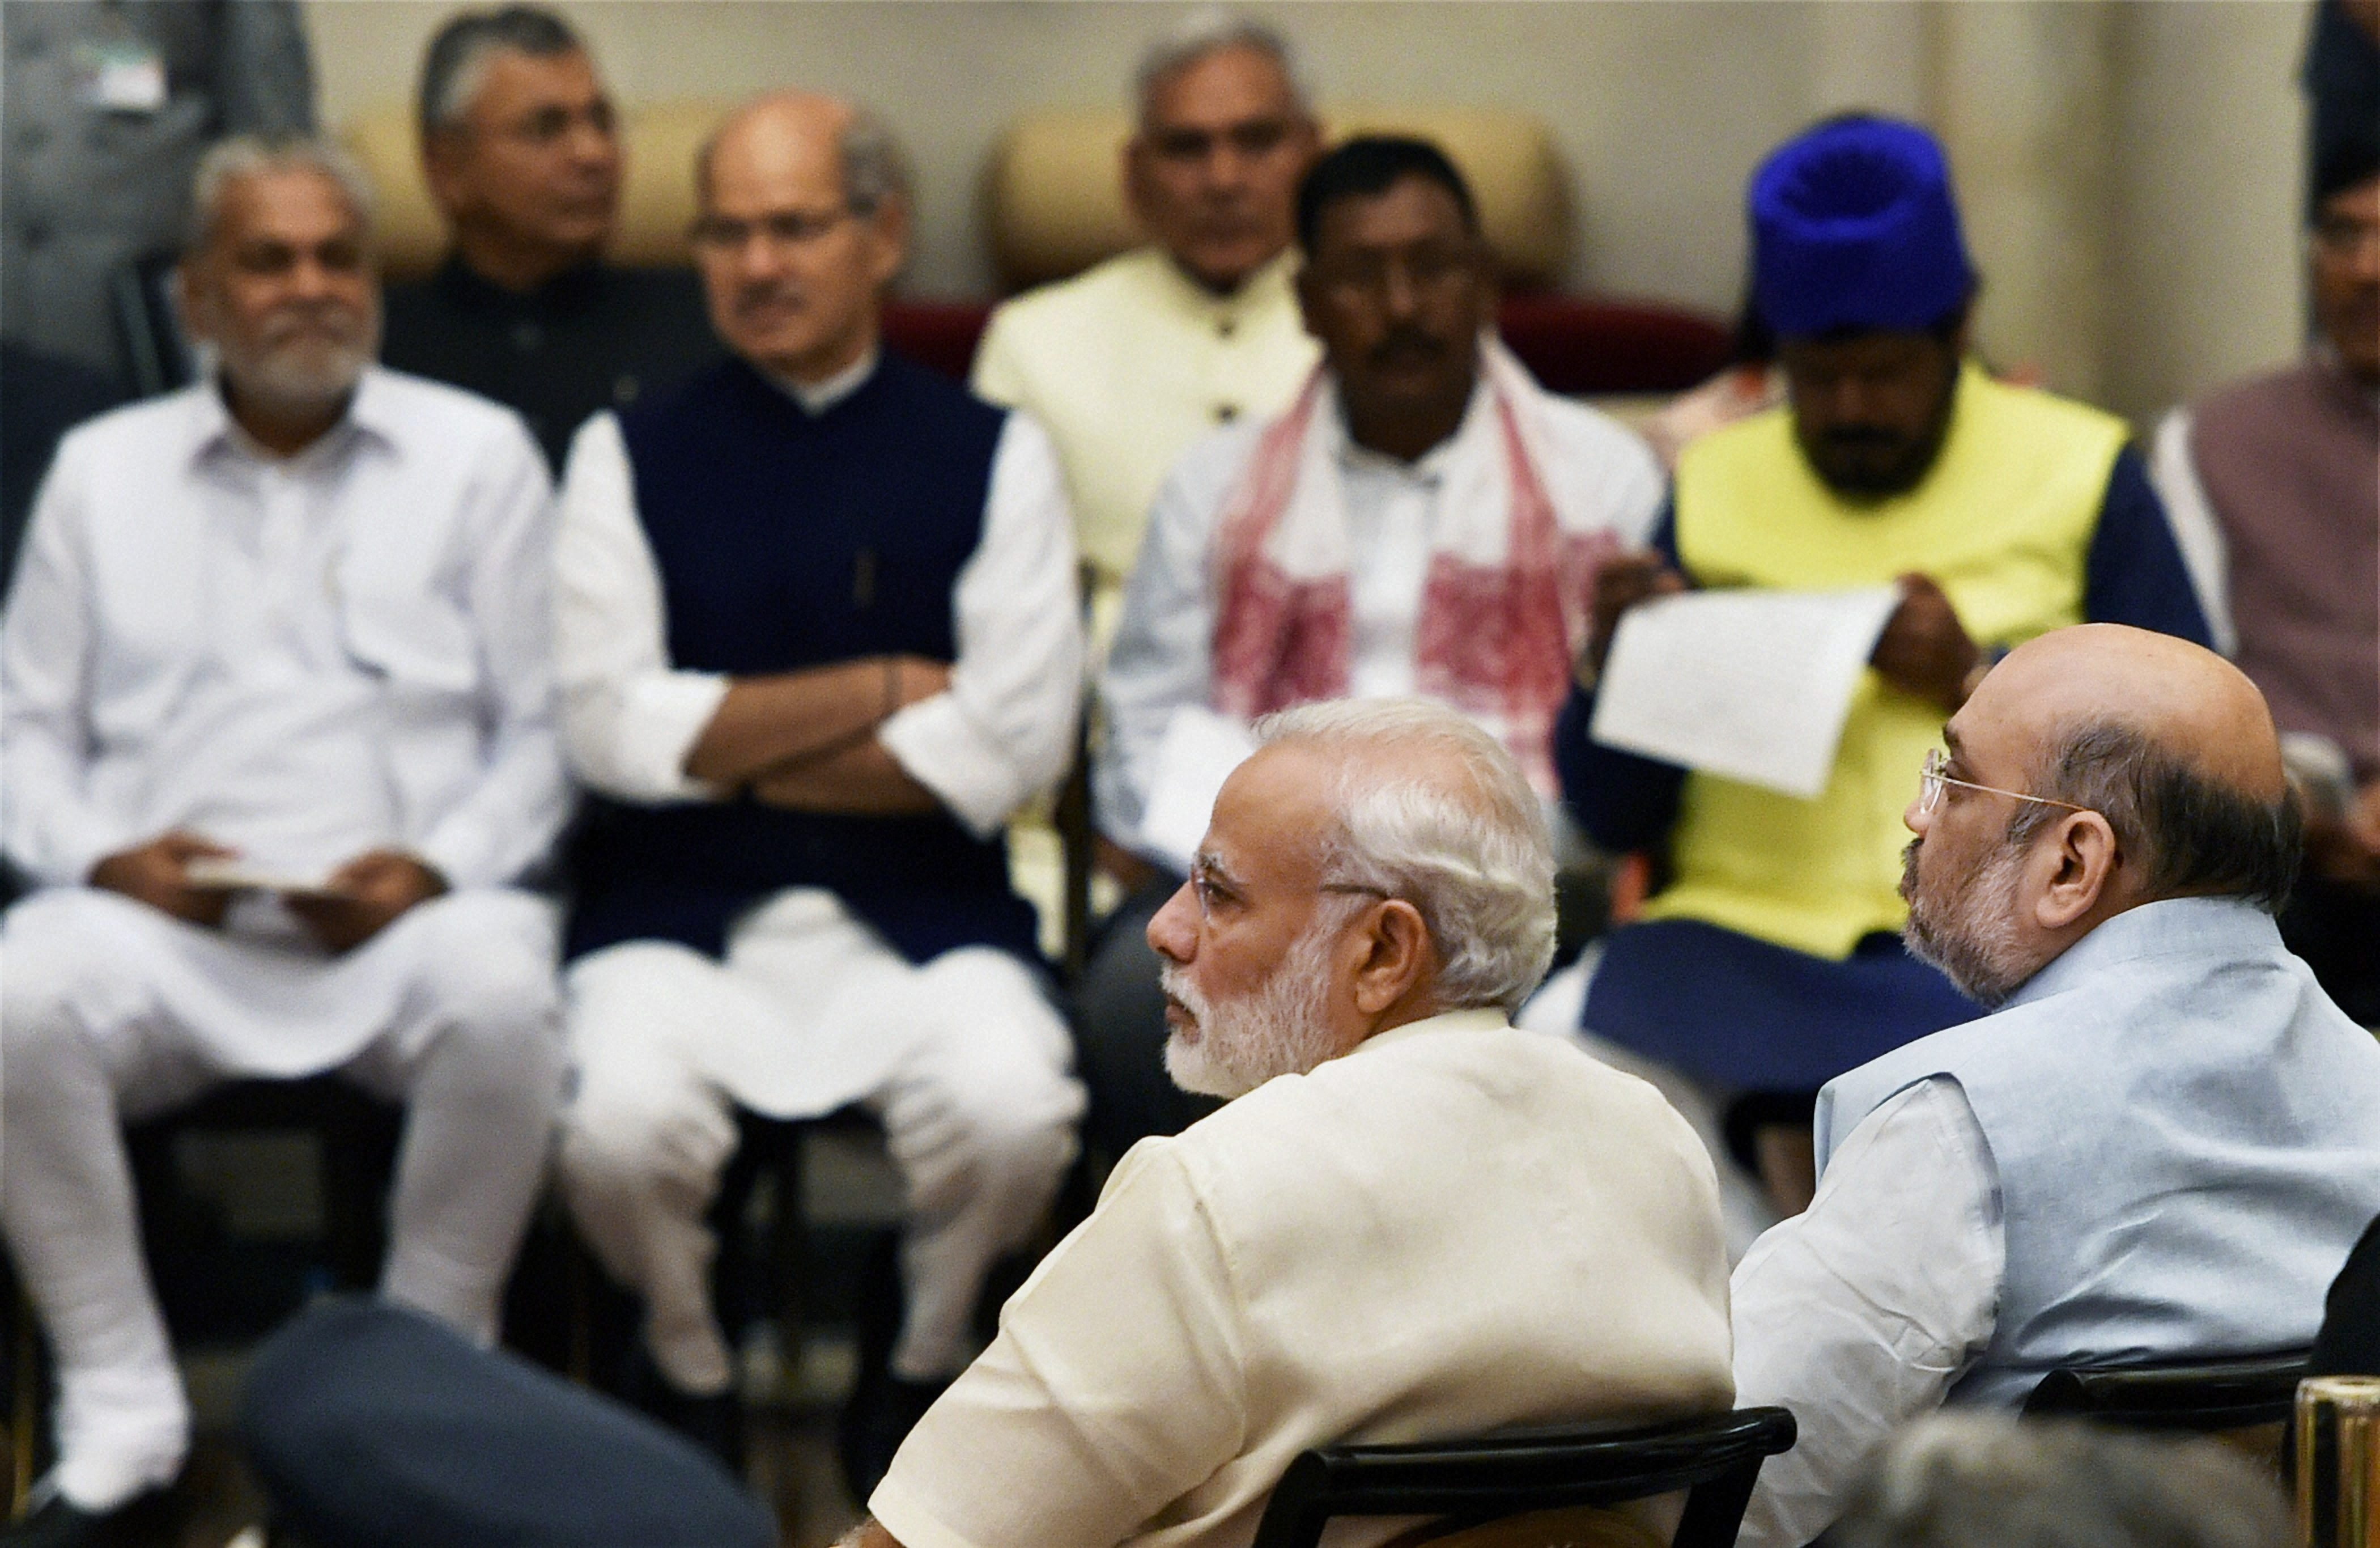 Prime Minister Narendra Modi with BJP president Amit Shah at the swearing-in ceremony at Rashtrapati Bhavan in New Delhi on Tuesday. Credit: PTI/ Shahbaz Khan